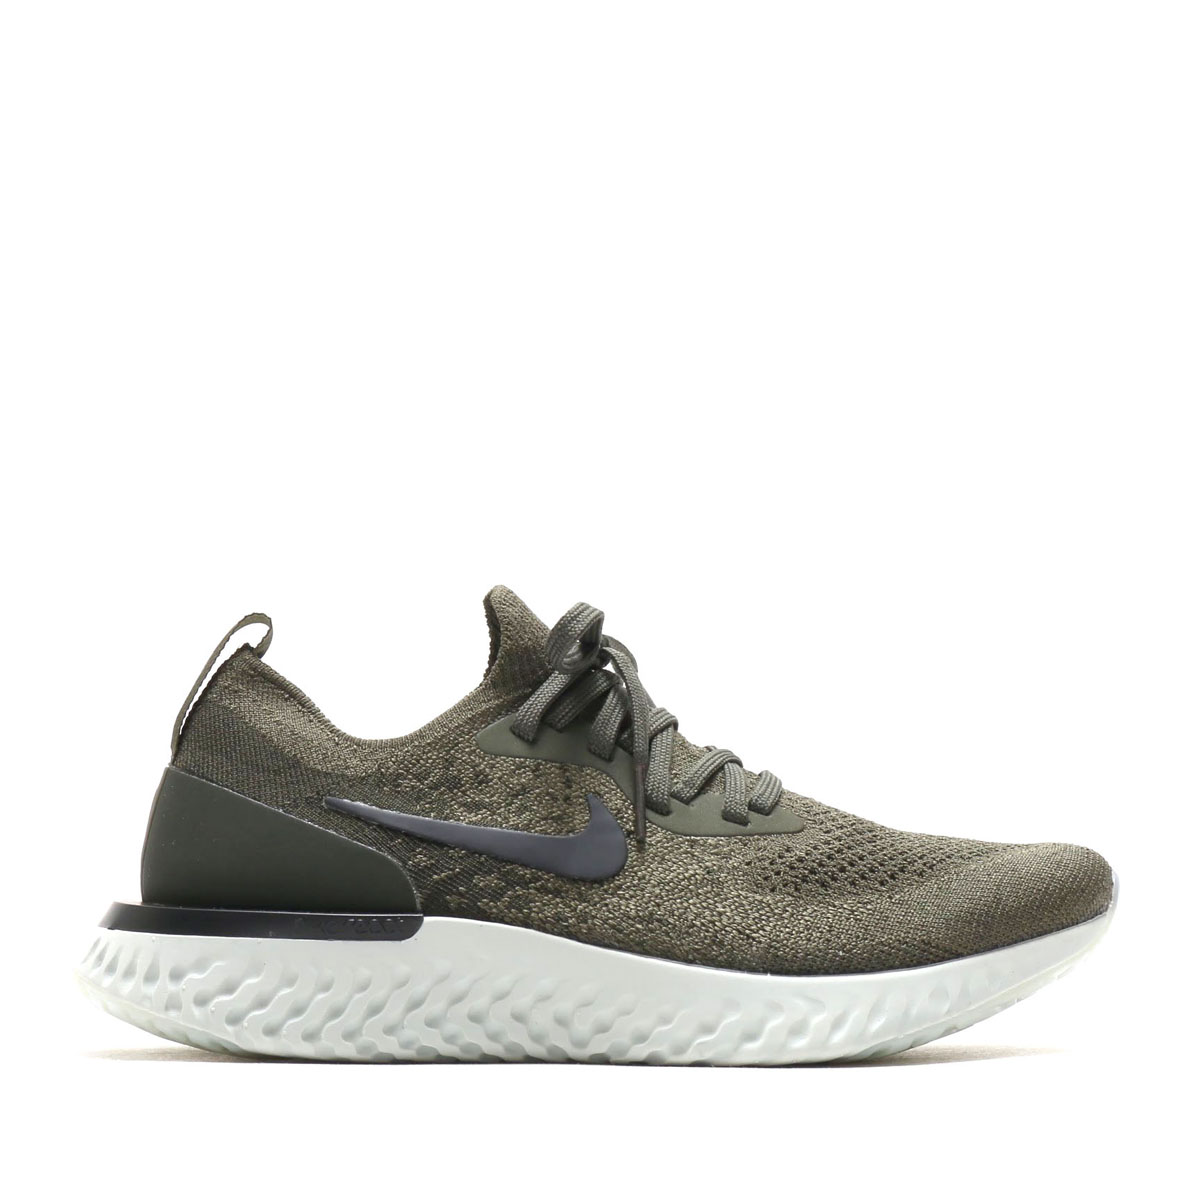 0d13c8e50651 NIKE WMNS EPIC REACT FLYKNIT (Nike women epic re-act fly knit) (CARGO KHAKI  BLACK-SEQUOIA-LIGHT SILVER) 18SU-S